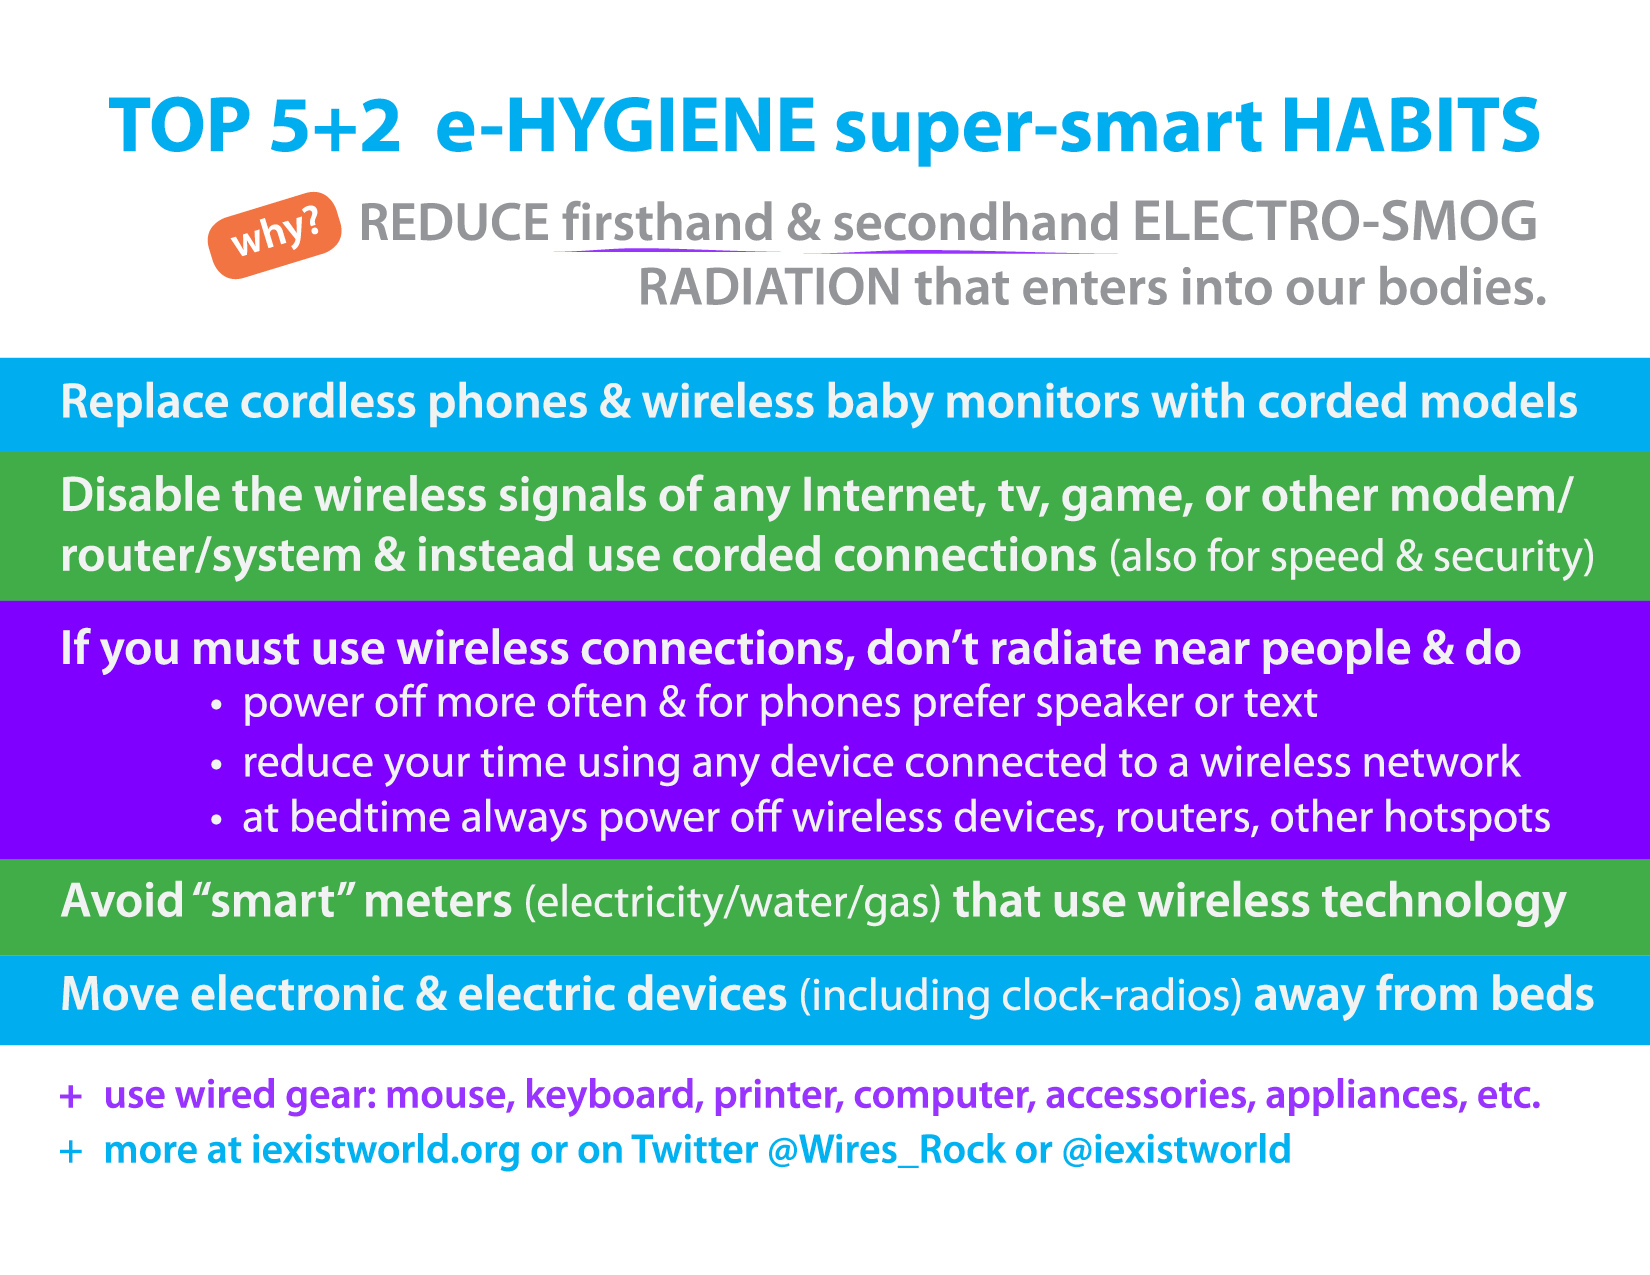 Top 5+2 e-Hygiene Habits